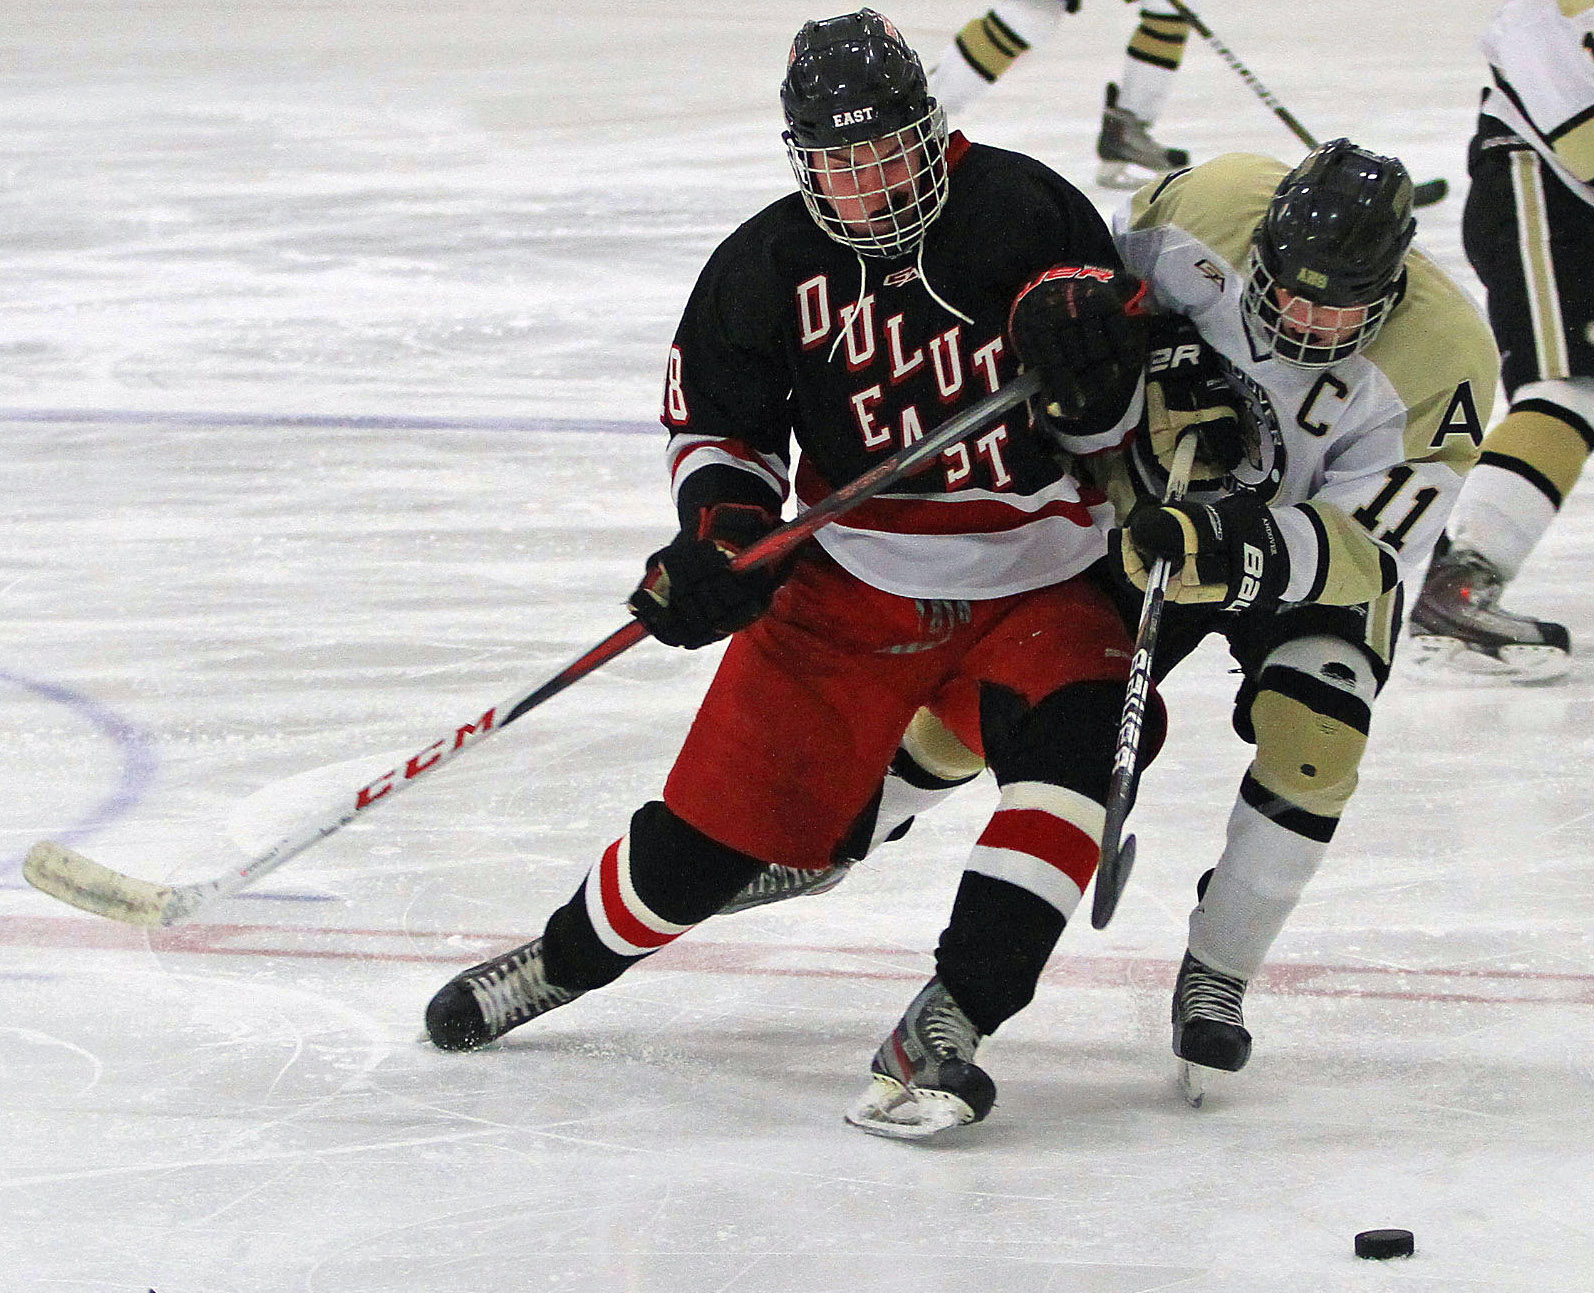 Duluth East's Wyatt Irwin leans into Andover's Brady Barthold as they chase the puck. Photo by Dave Madsen, www.facebook.com/spbdm